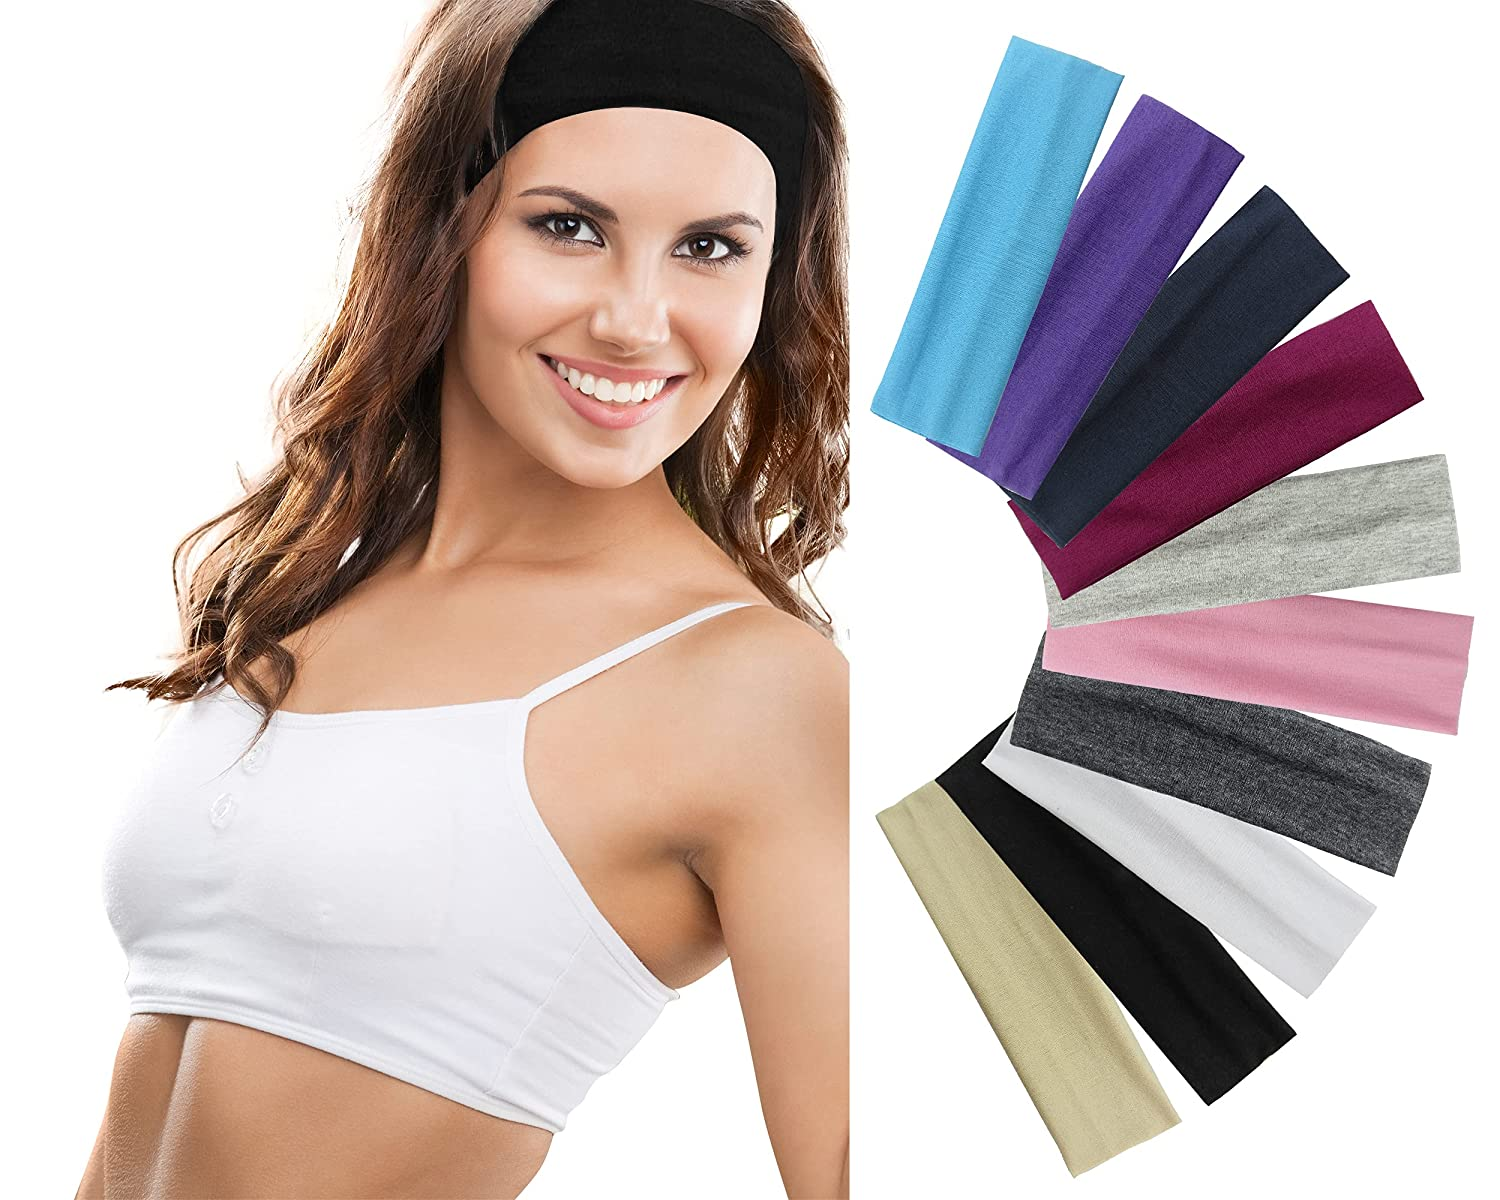 Styla Hair 10 Pack Stretch Headbands Non-Slip Head Wraps Great for Sports, Yoga, Pilates, Running, Gym, Workouts, Baseball, Casual Wear, Gifts & more! Variety